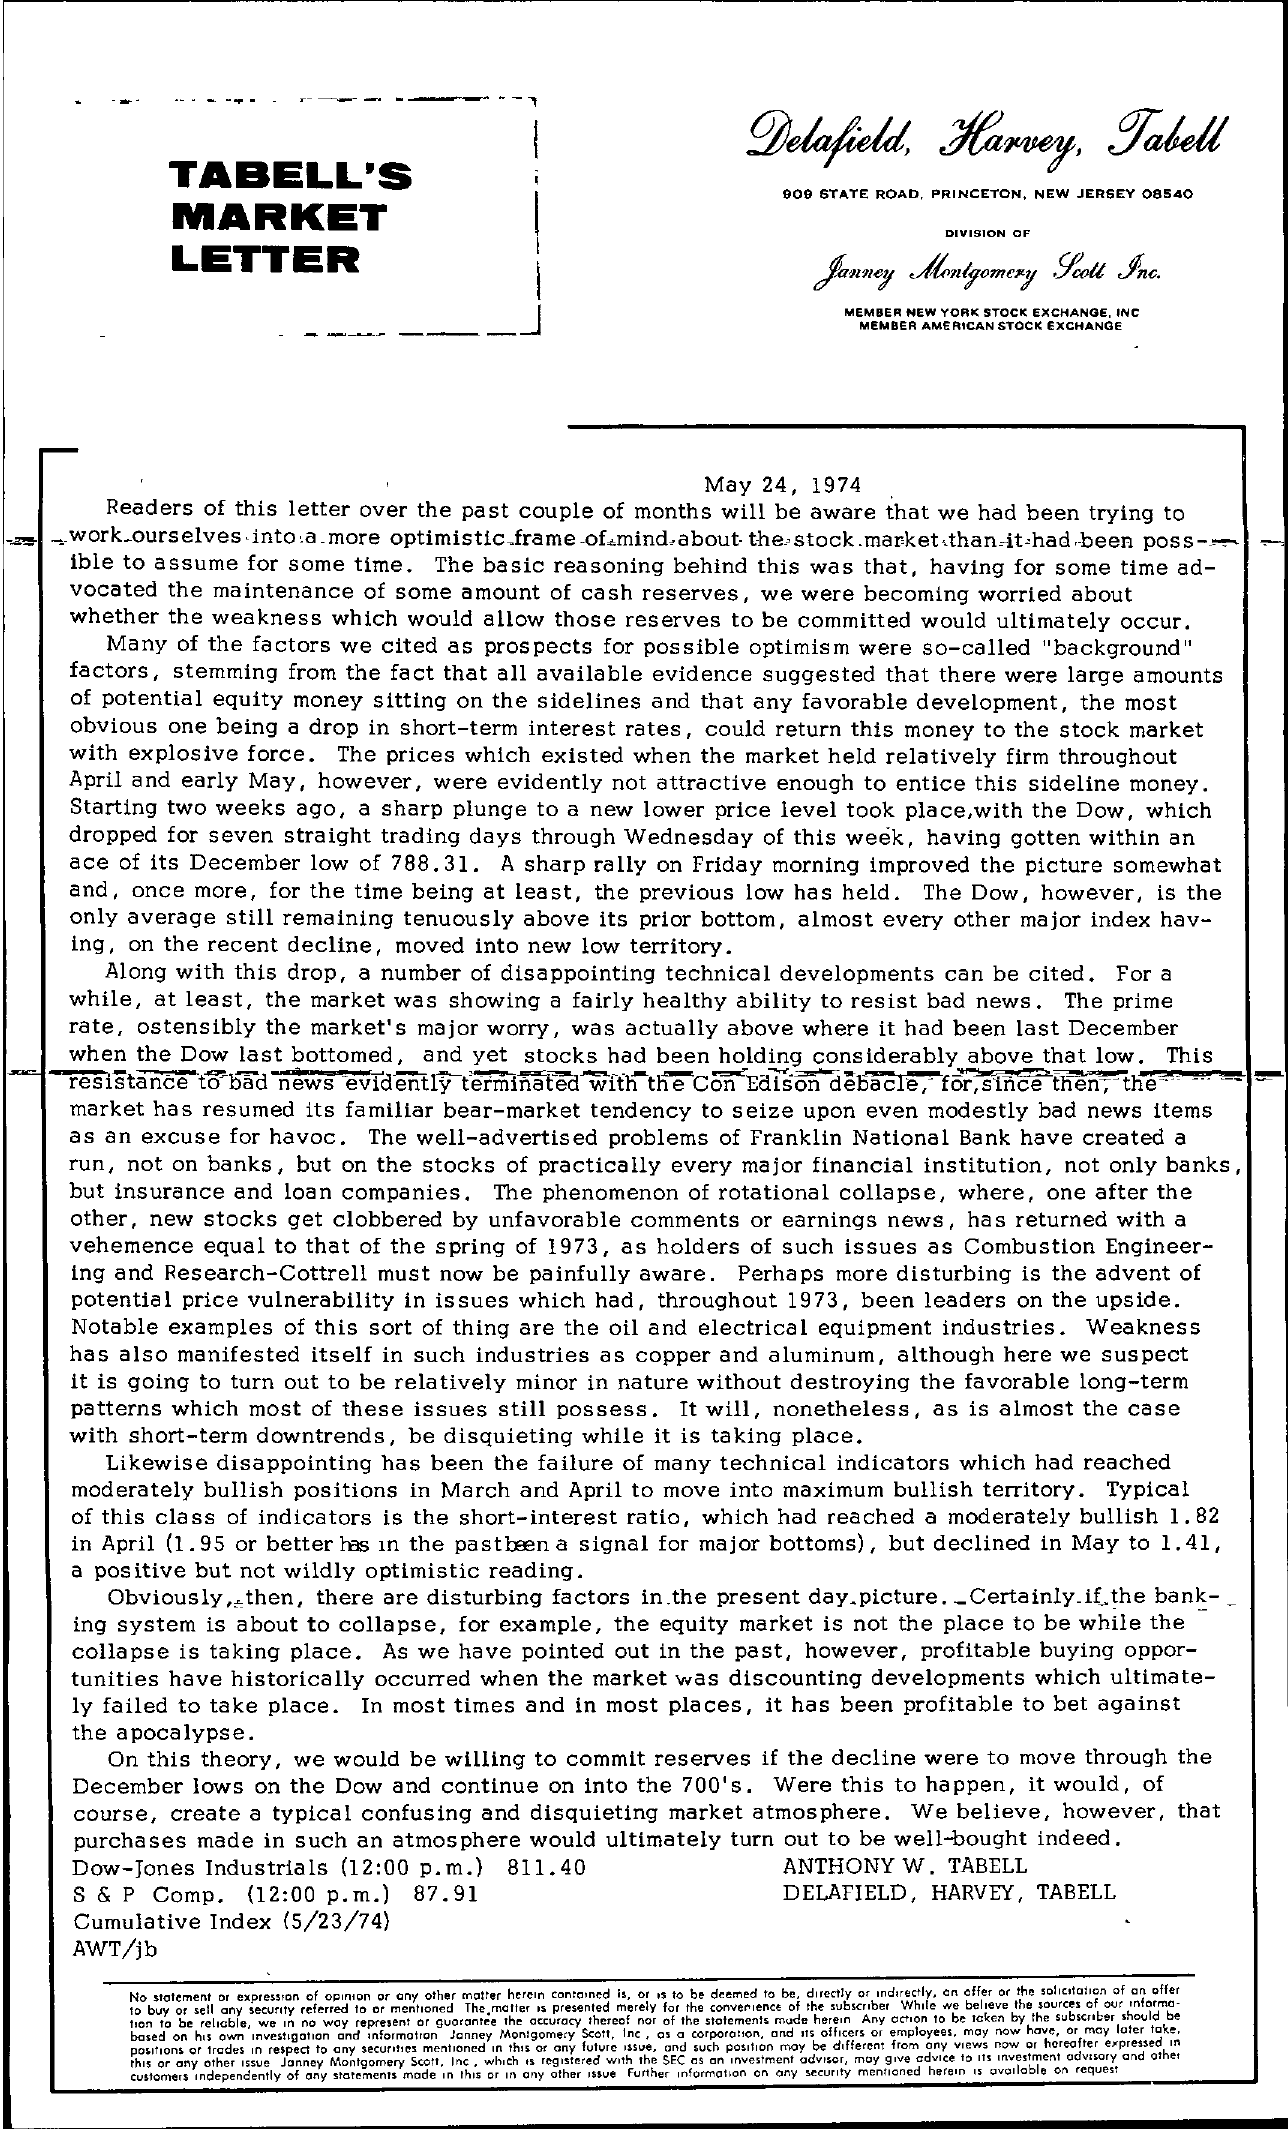 Tabell's Market Letter - May 24, 1974